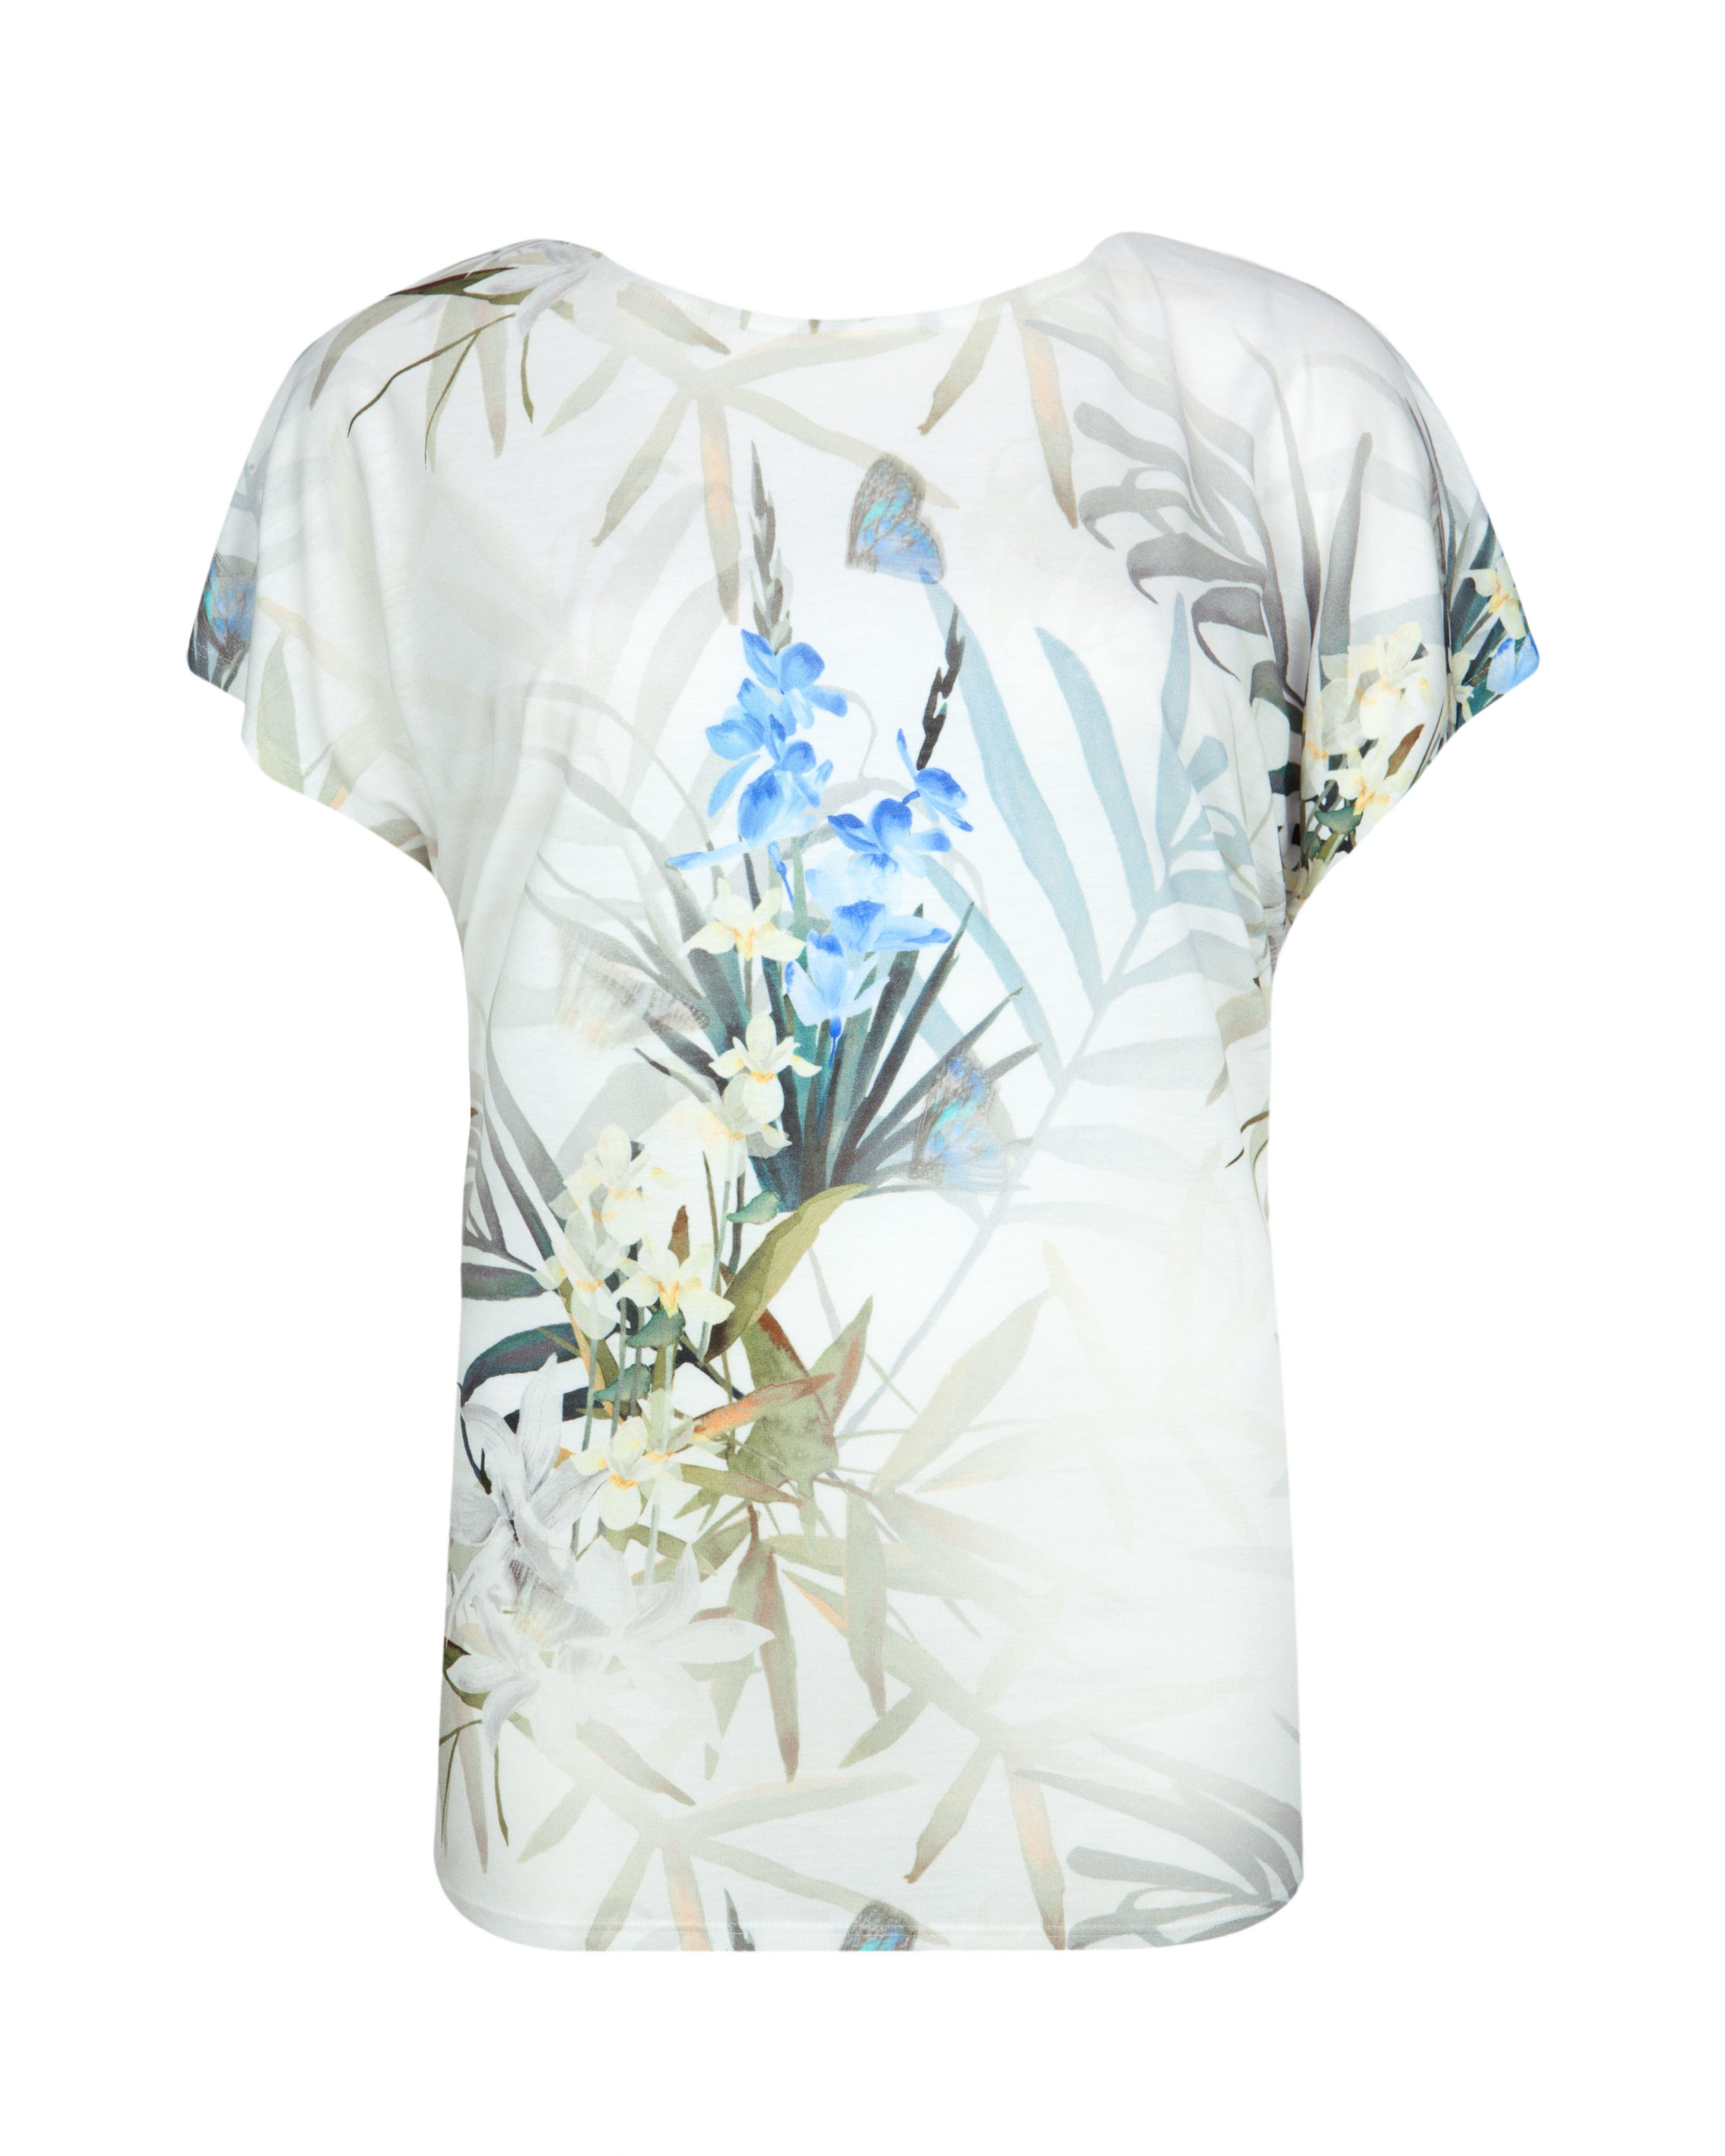 Ted baker sazia twilight floral t shirt in green lyst for Ted baker floral shirt